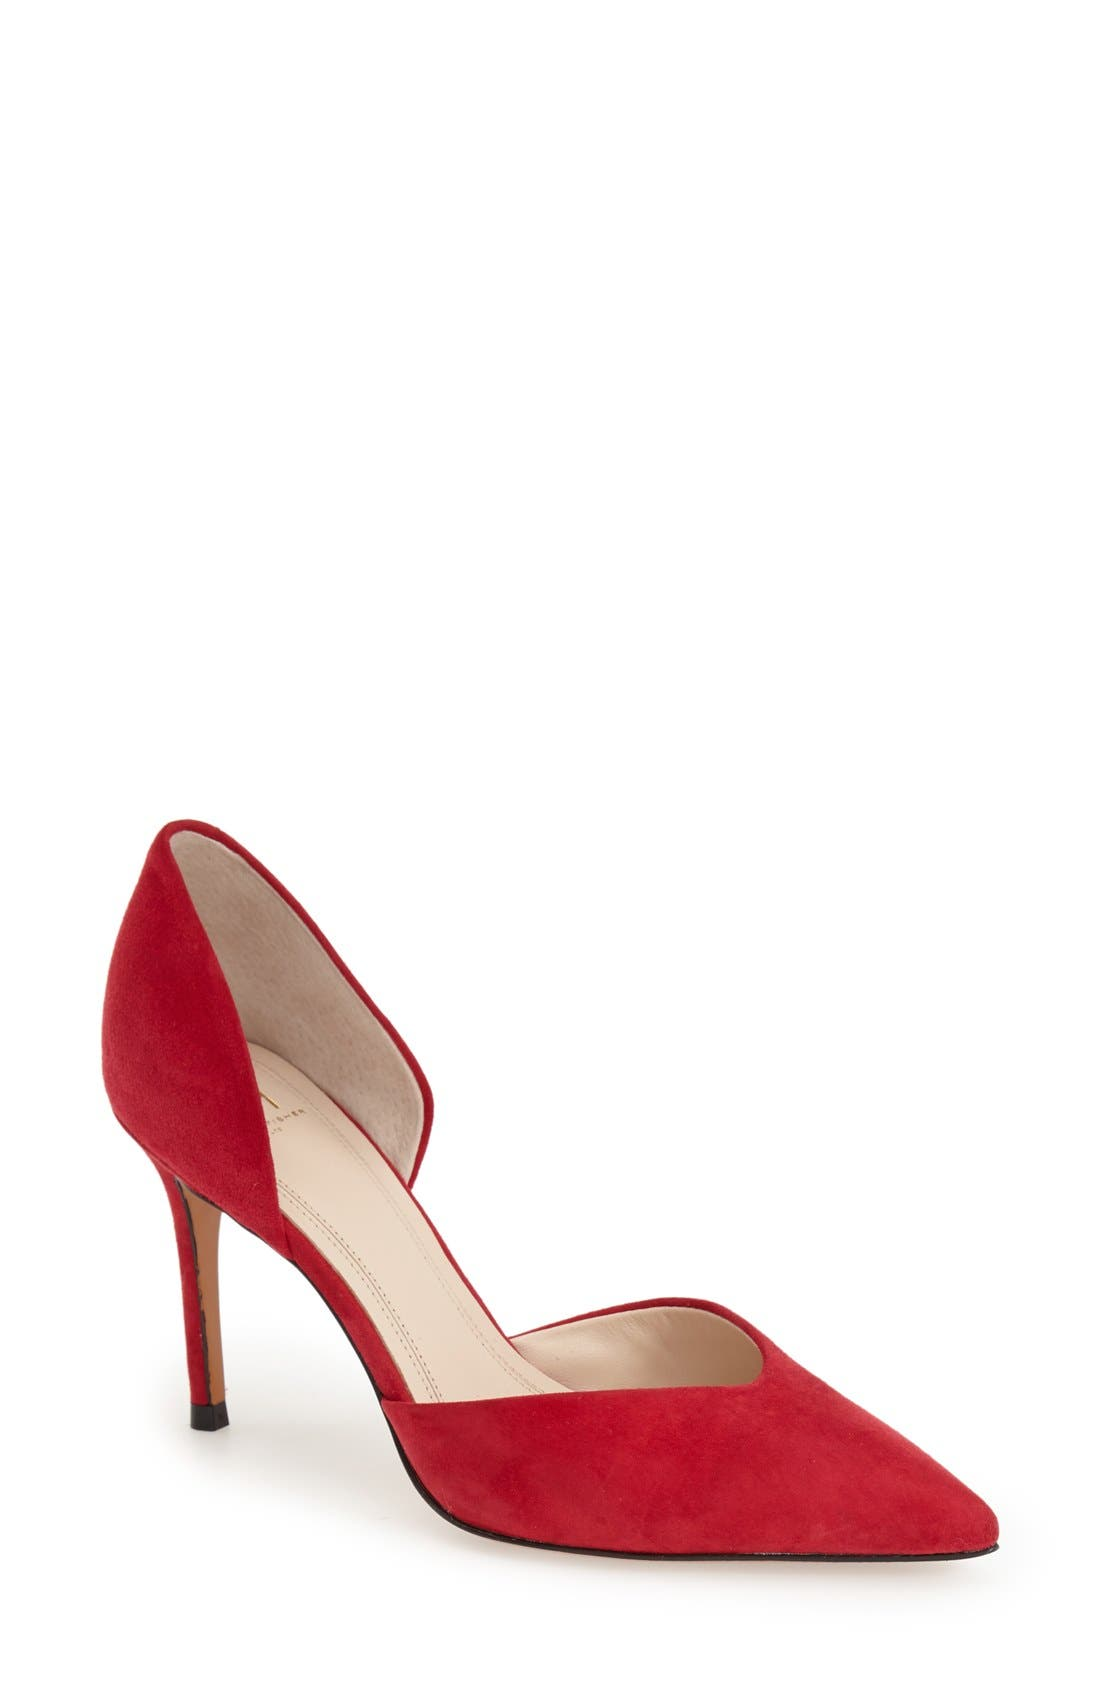 Main Image - Marc Fisher LTD 'Tammy' d'Orsay Pump (Women)